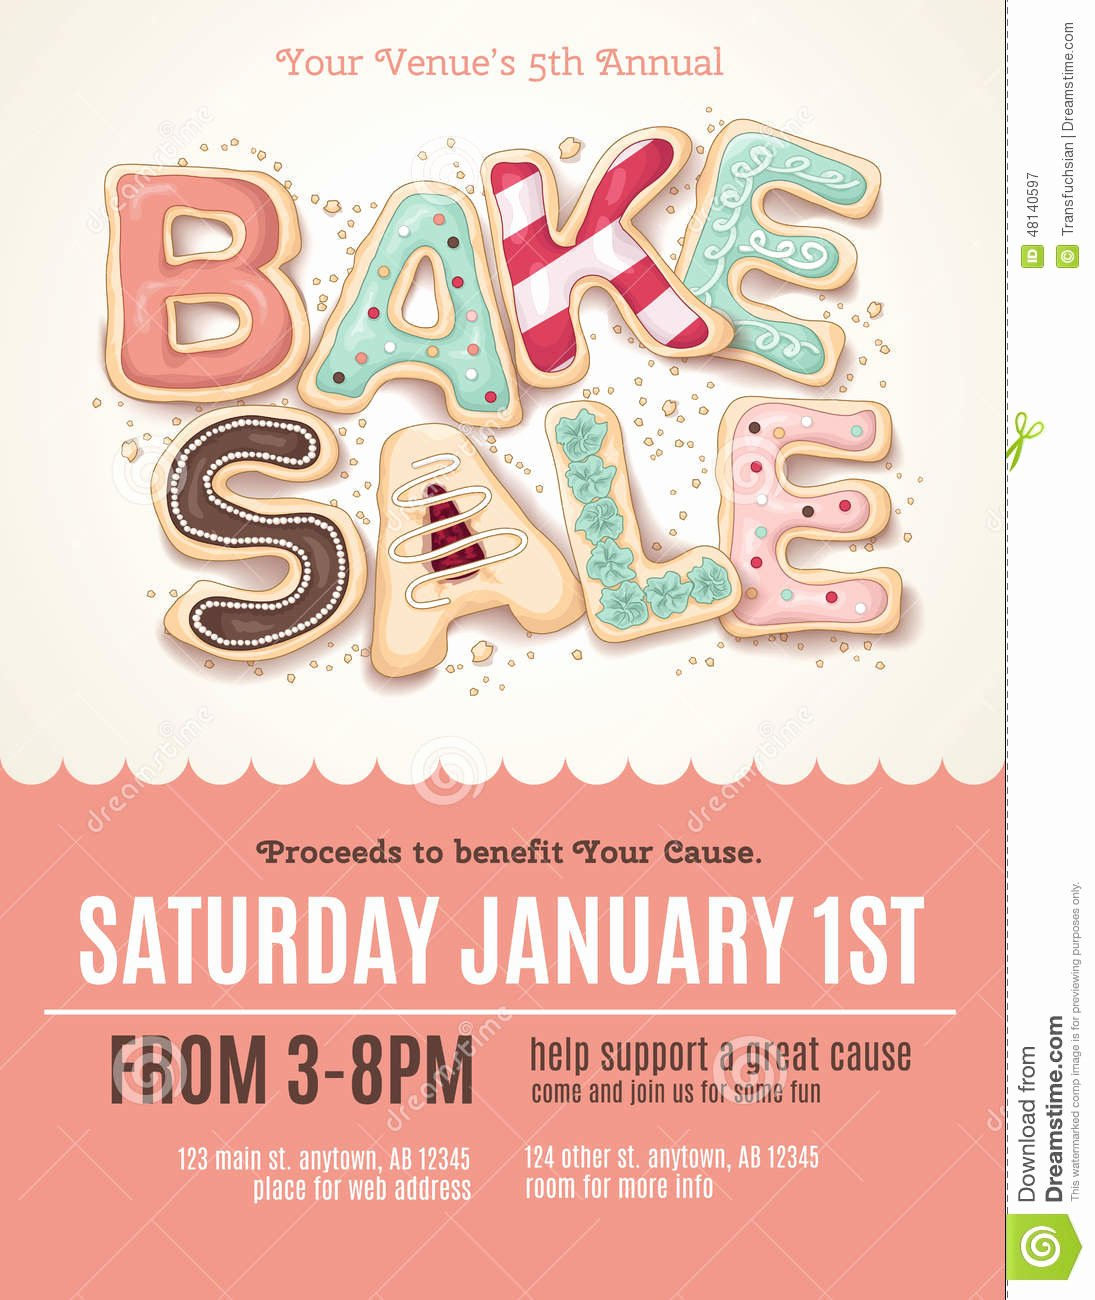 Bake Sale Flyer Template Free Lovely Fun Cookie Bake Sale Flyer Template Stock Vector